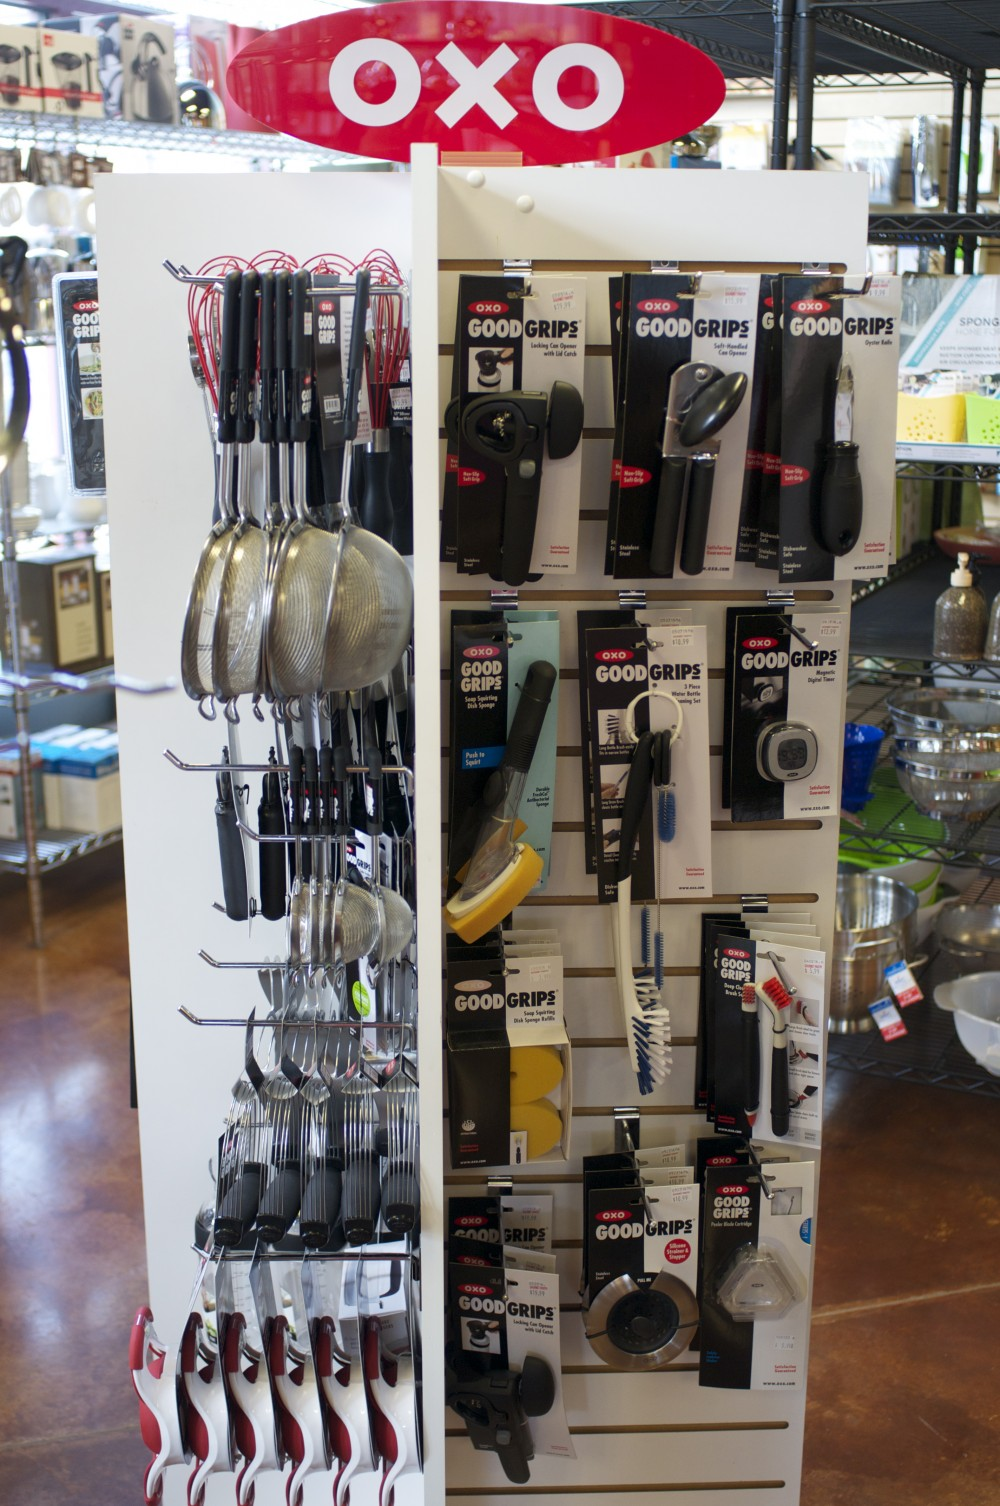 OXO Gadgets at Gourmet Pantry